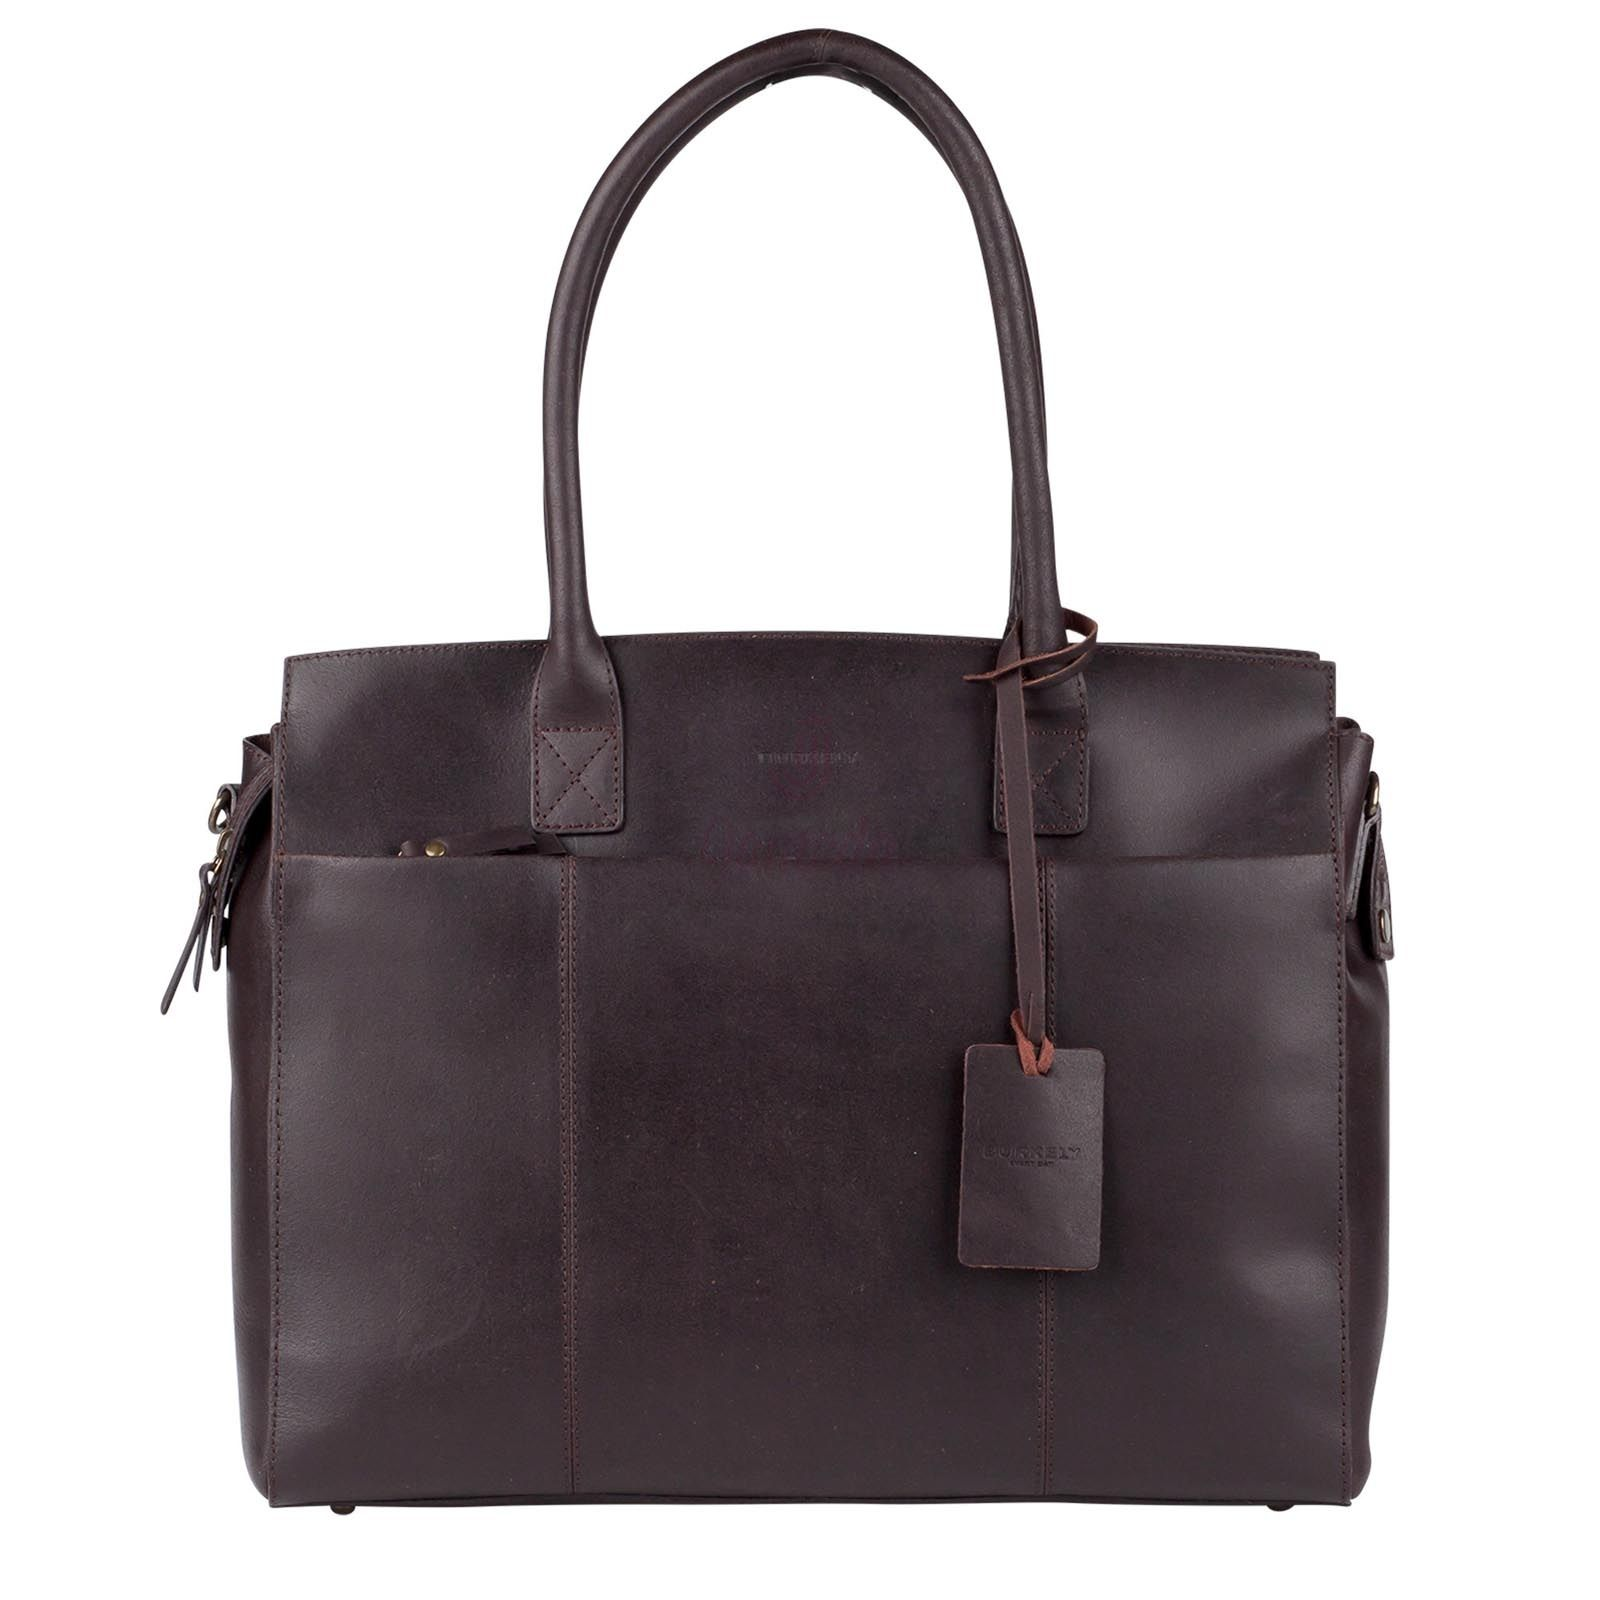 Burkely Vintage Doris Laptopbag is de ideale tas voor school of een stijlvolle…